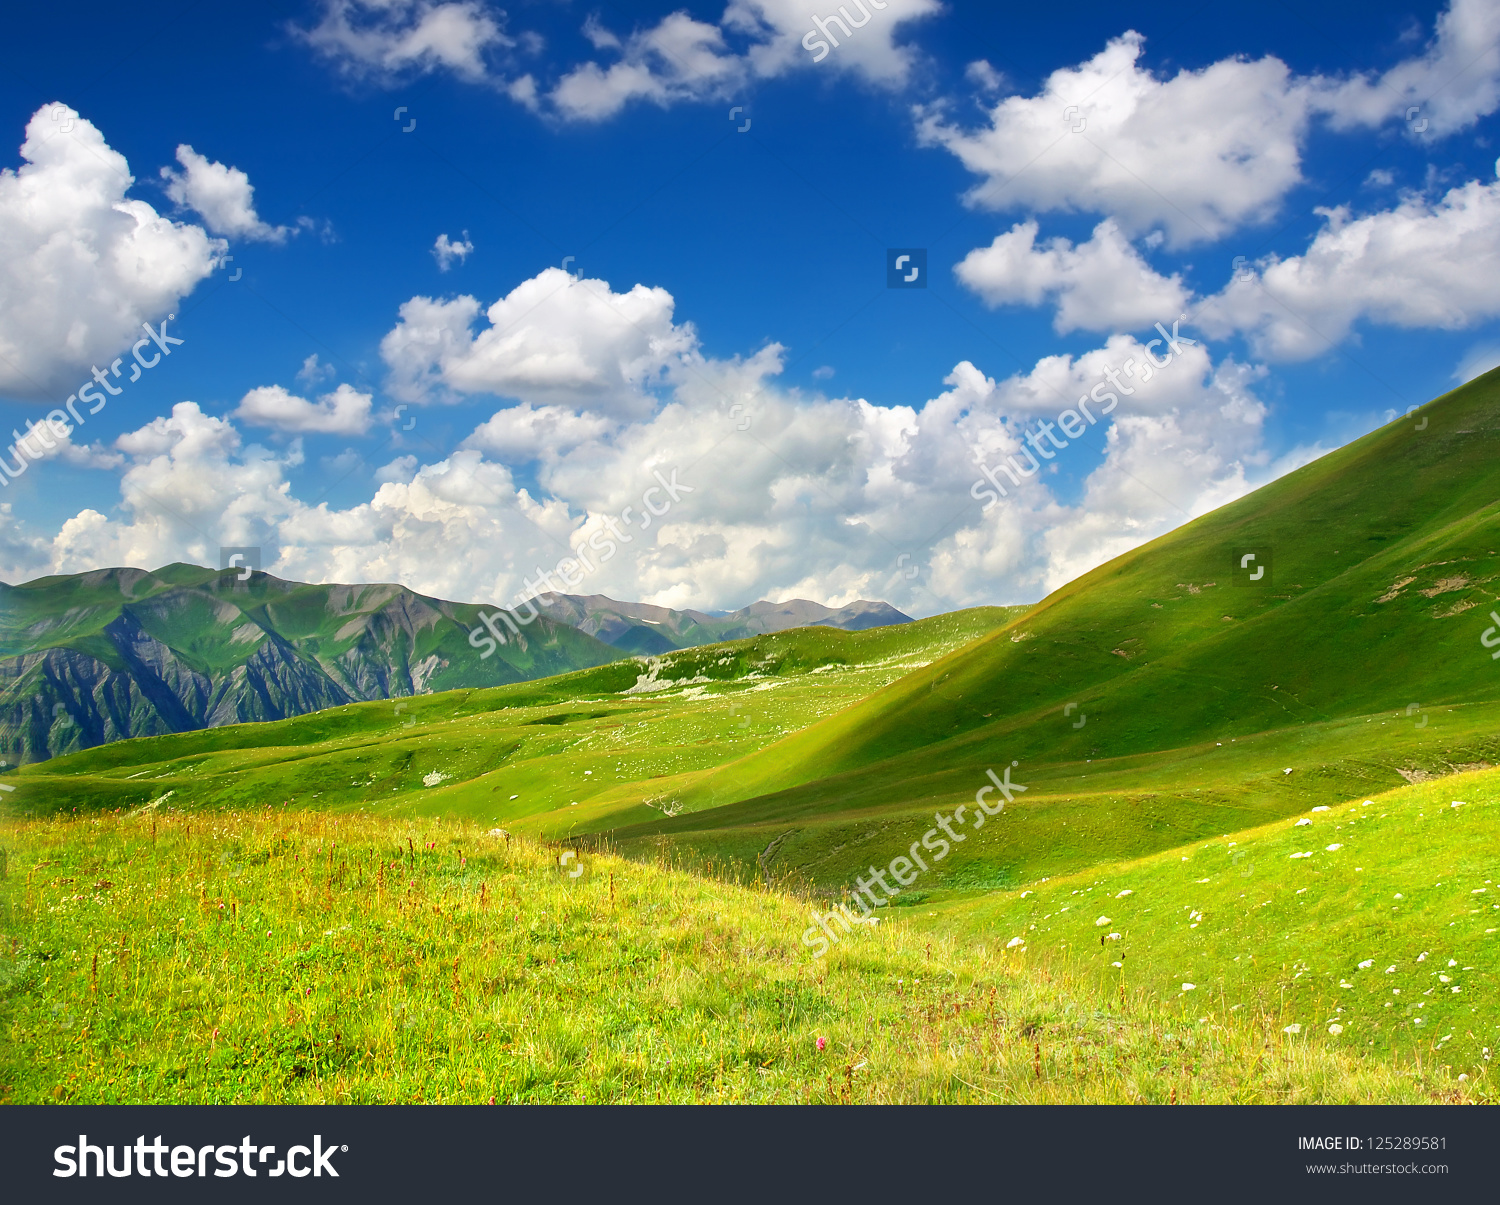 Valley clipart himalaya Green mountains And summer Valleys